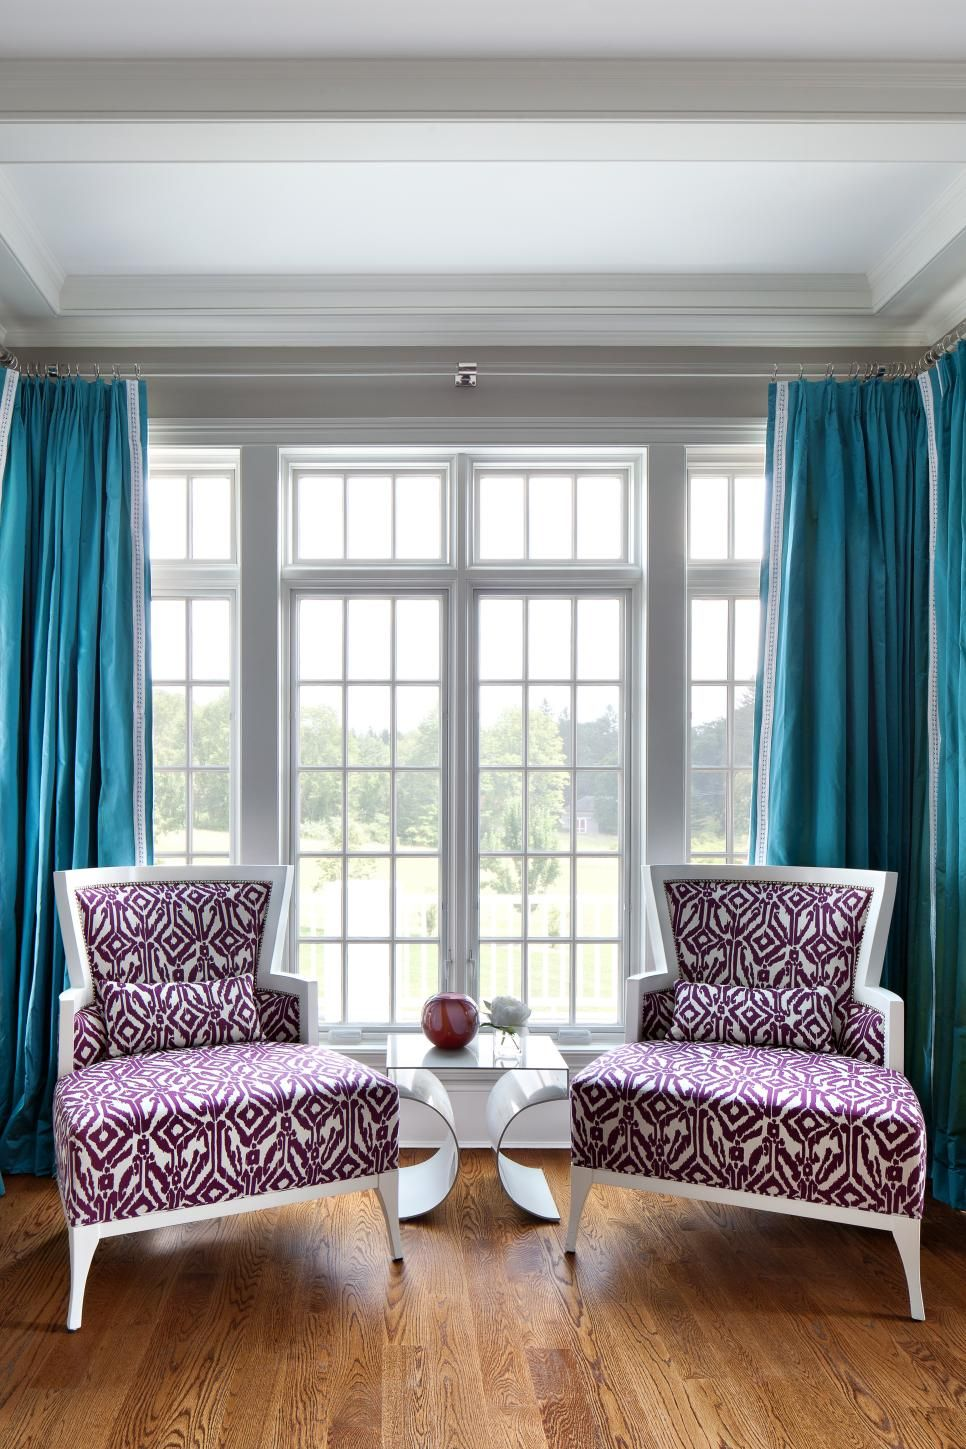 Myiconichome website provides custom Curtains, Roller Blind, and ...